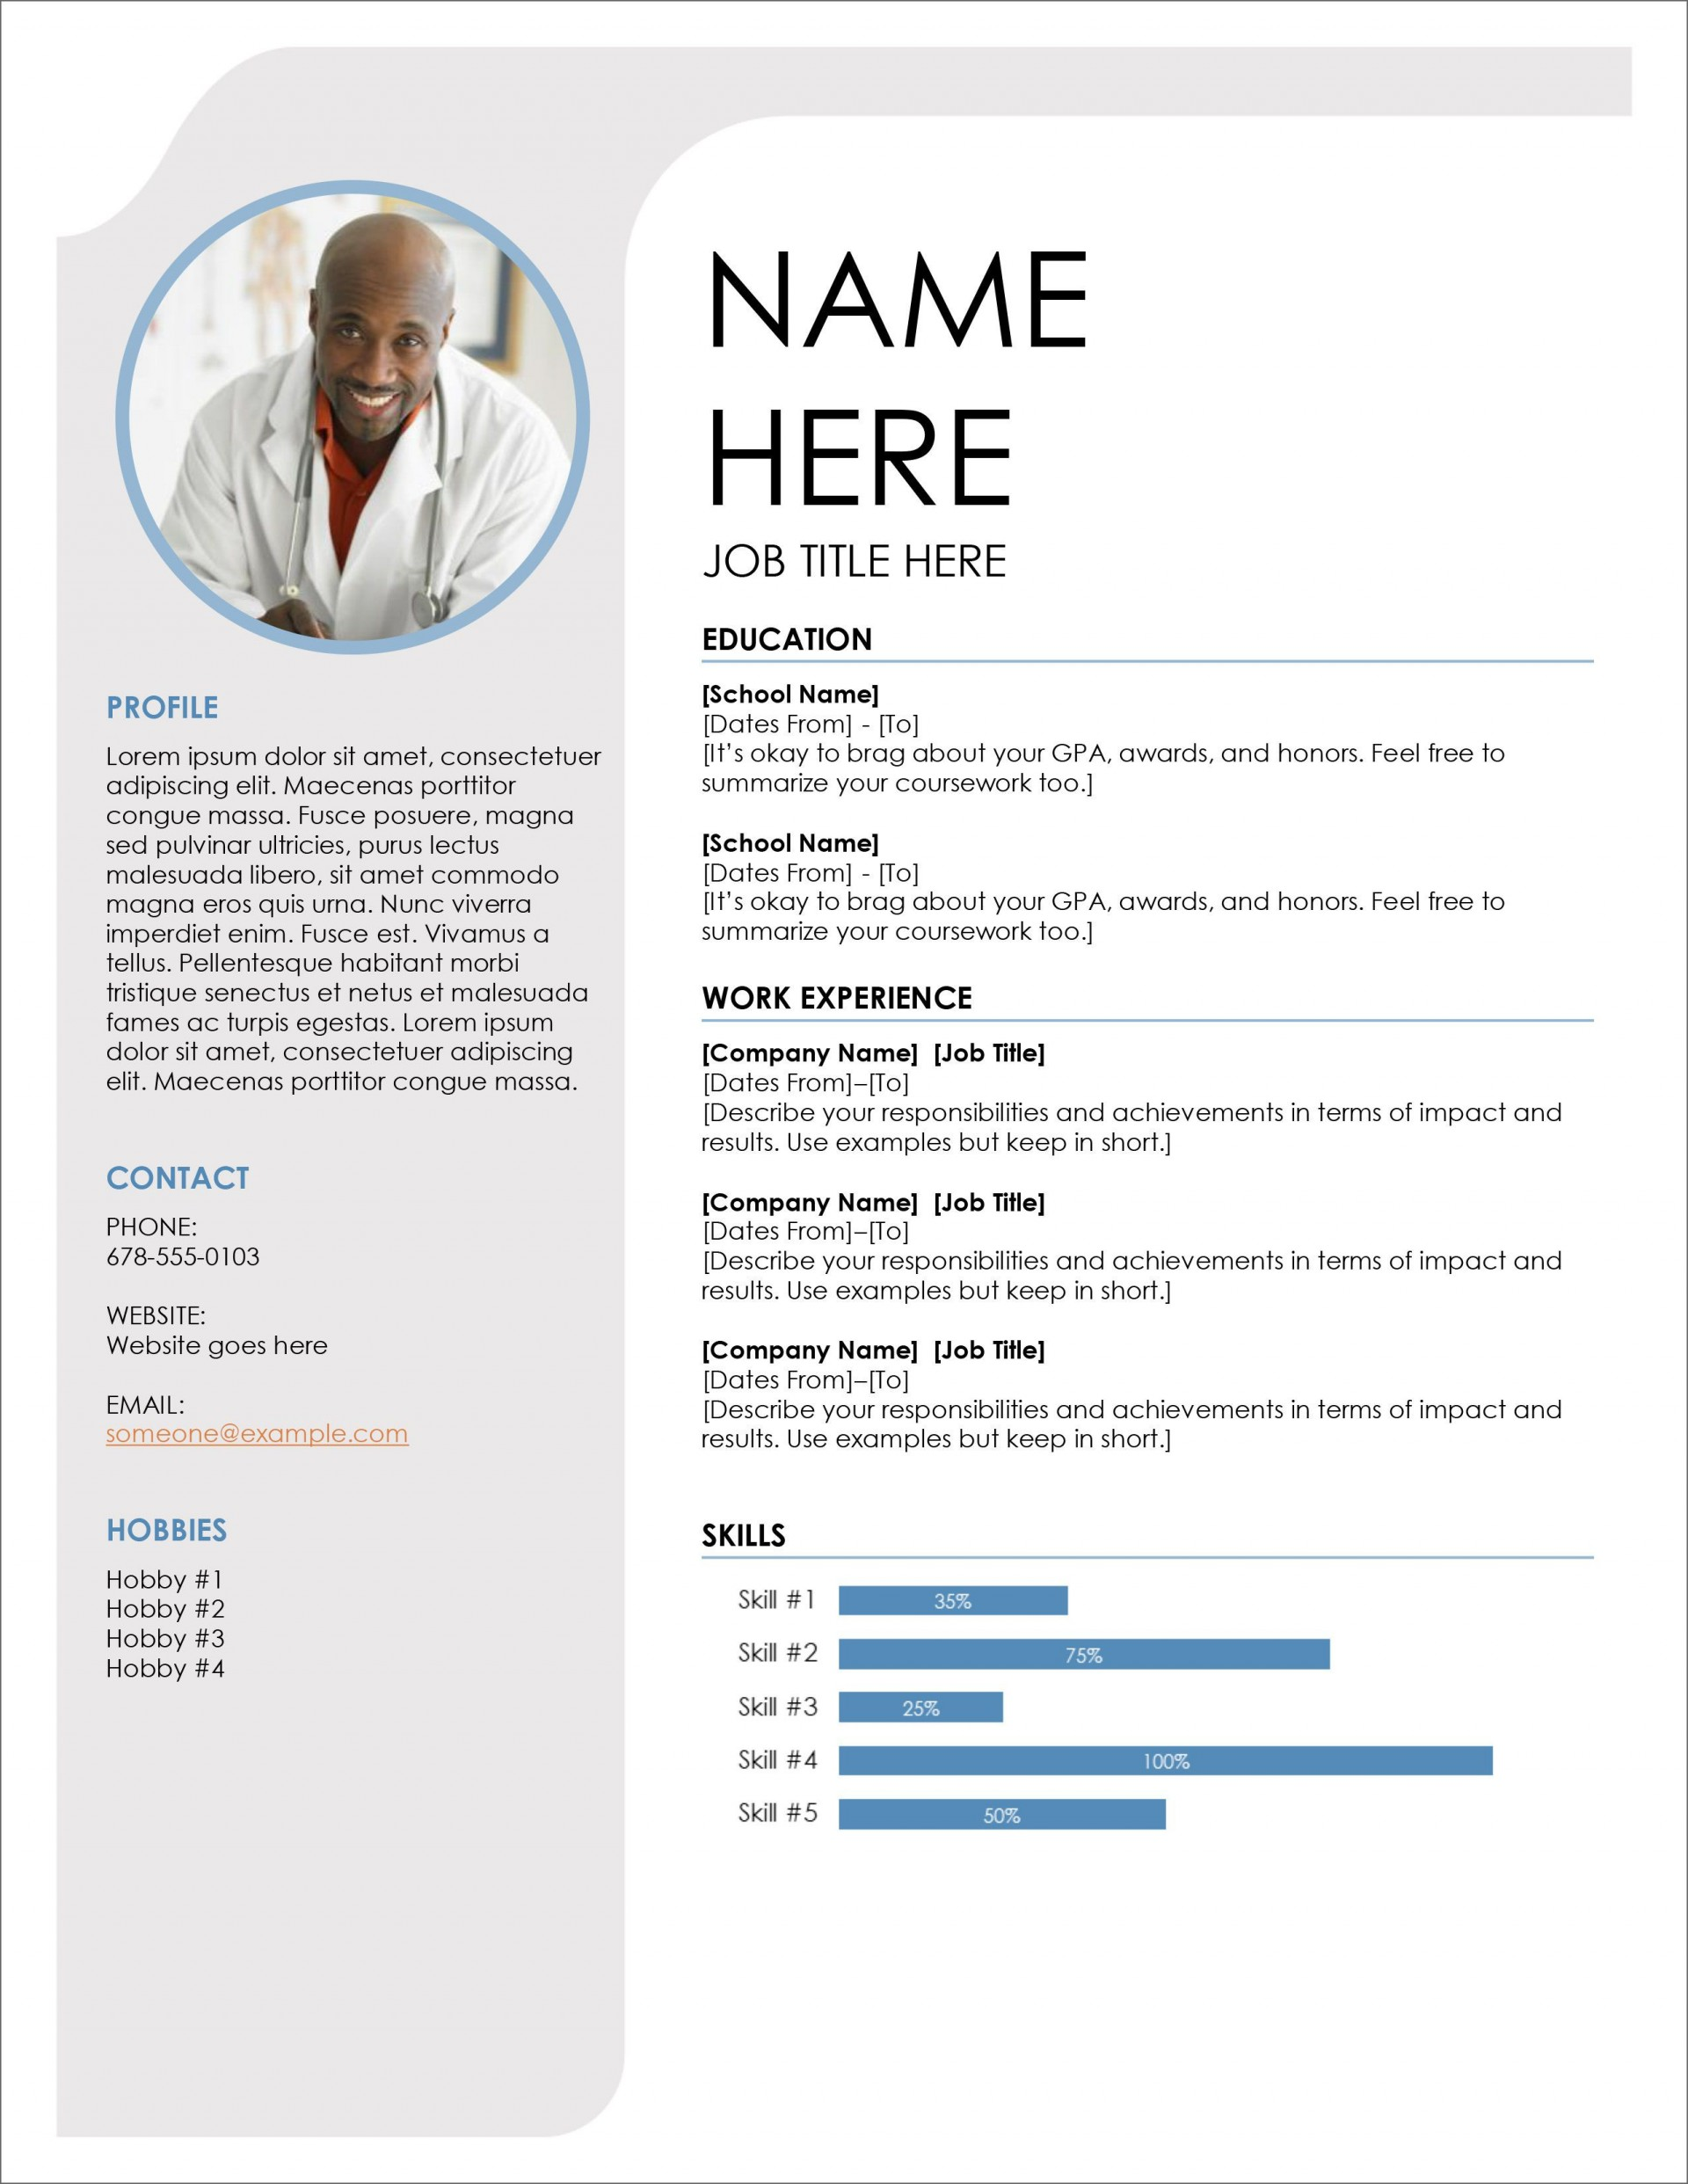 005 Wonderful Download Free Resume Template Photo  Word Professional 2019 20201920